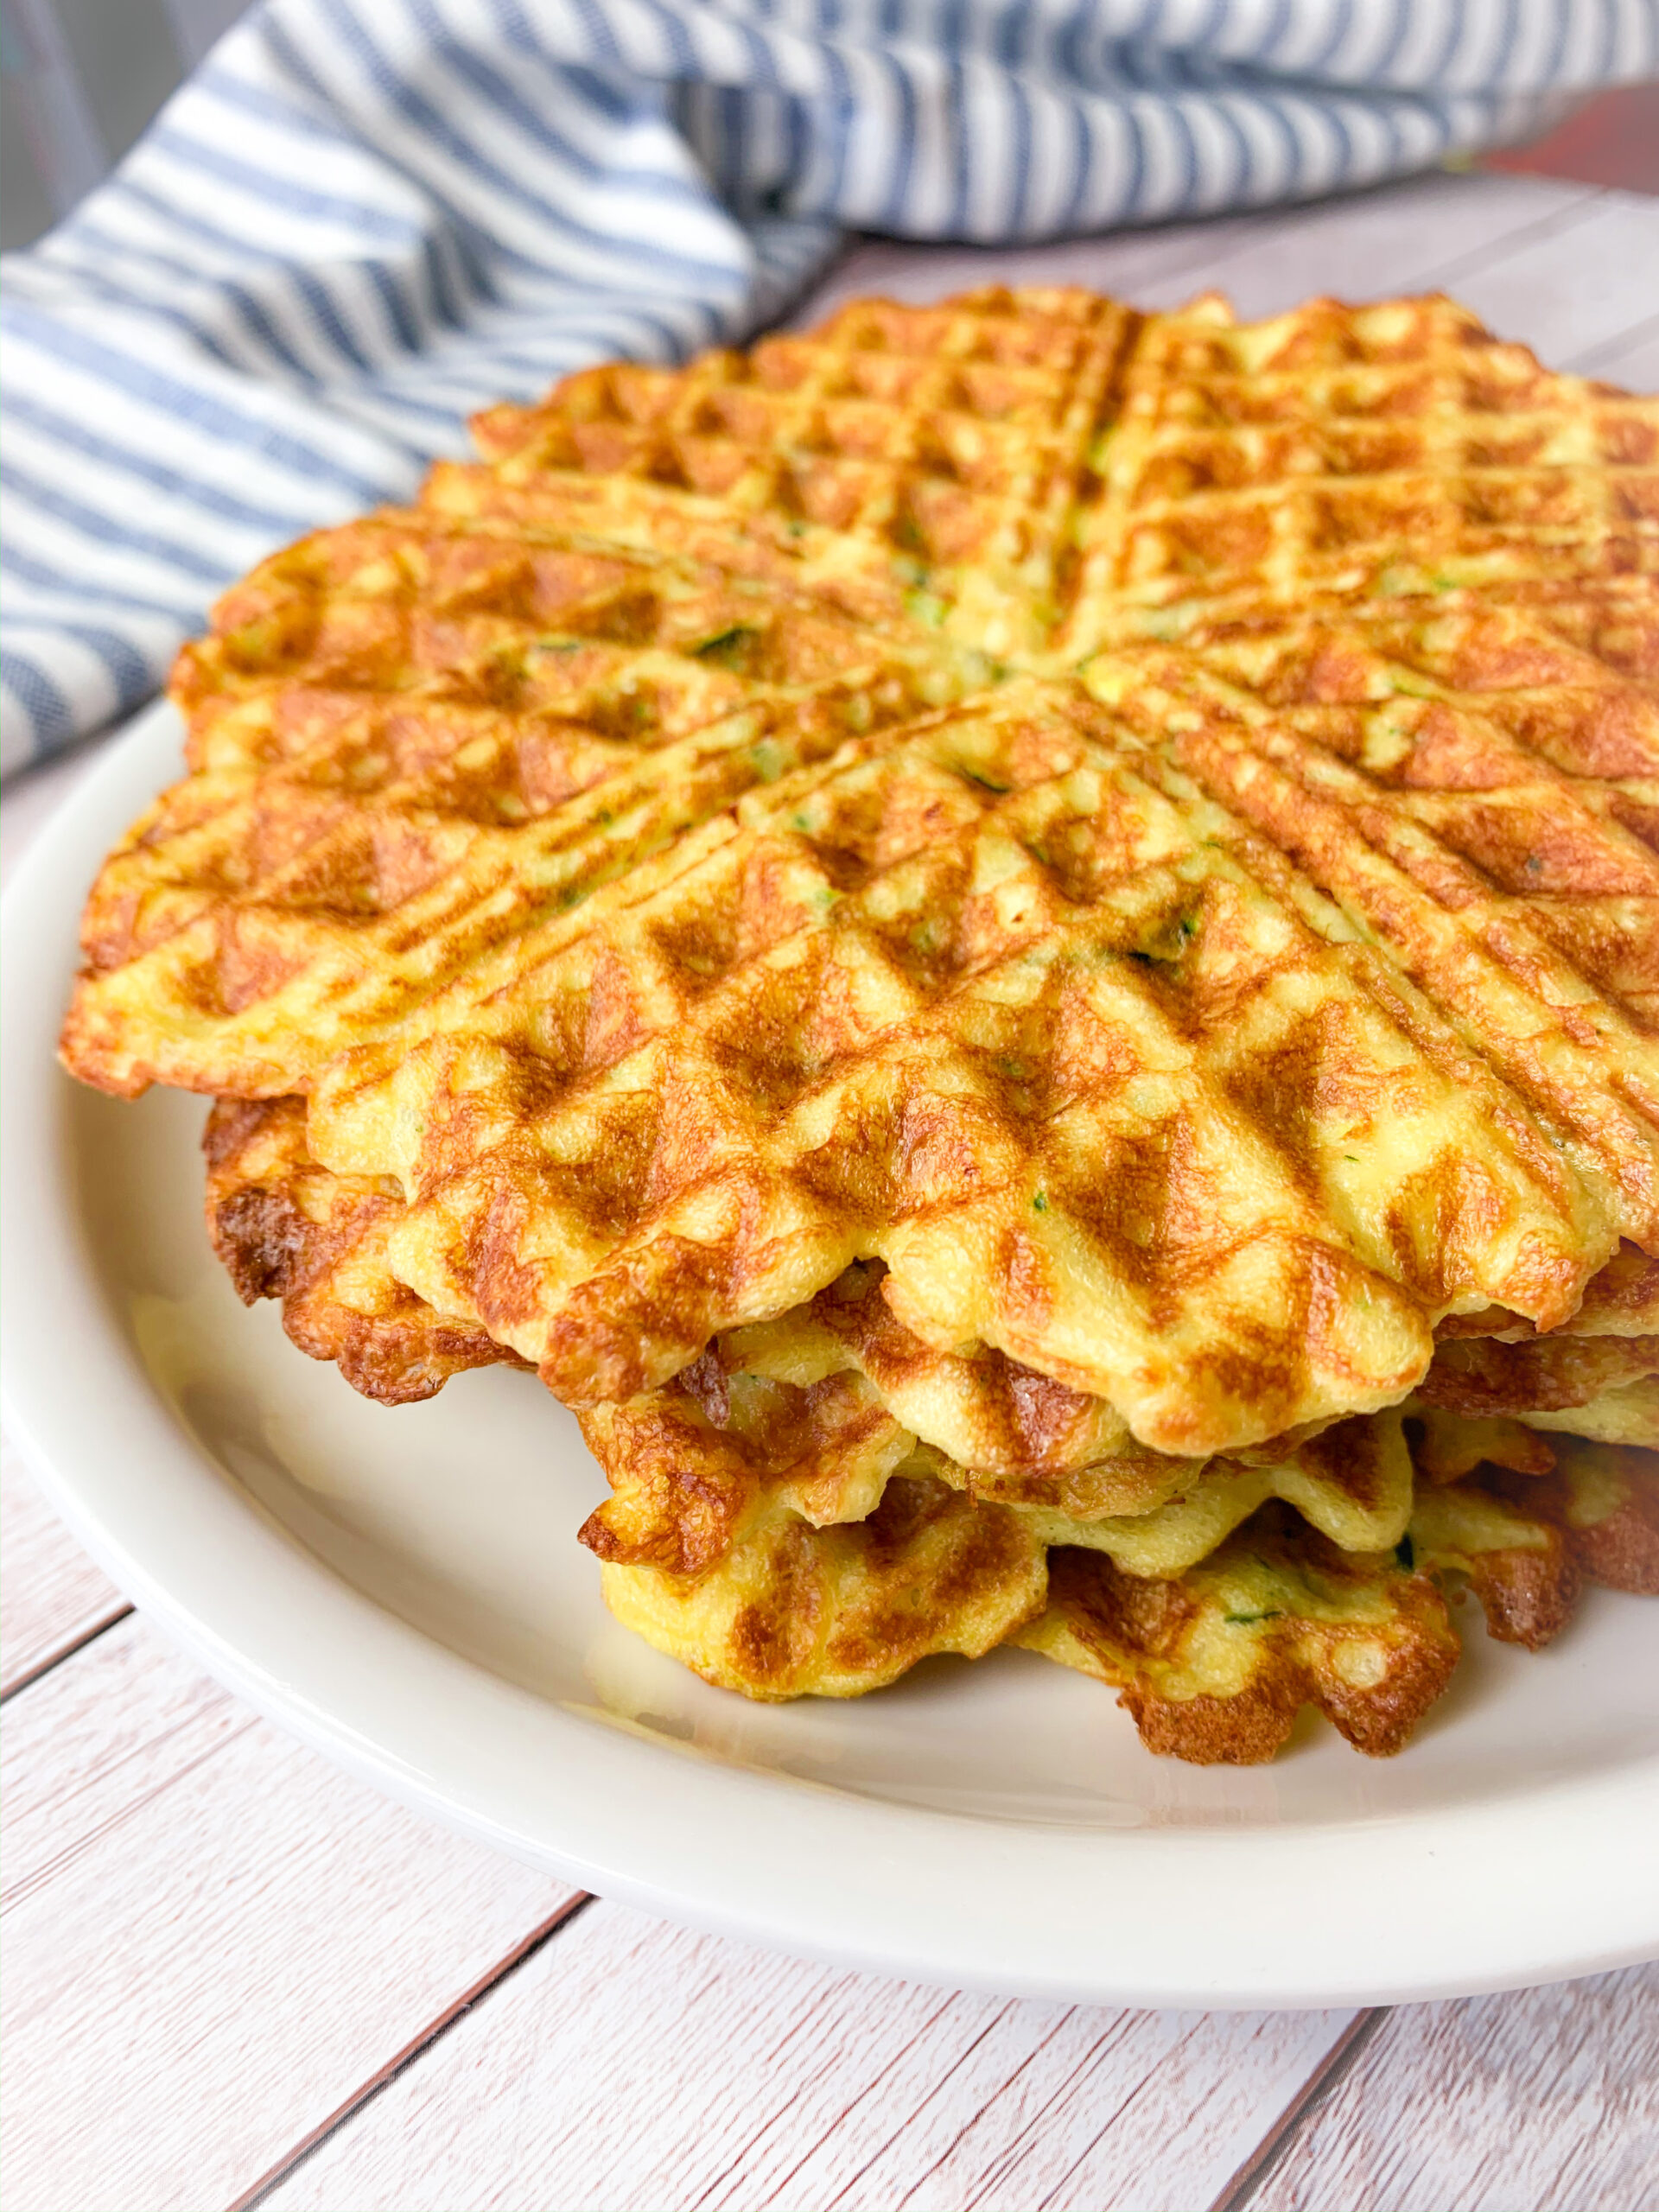 Low carb waffles with zucchini on a plate